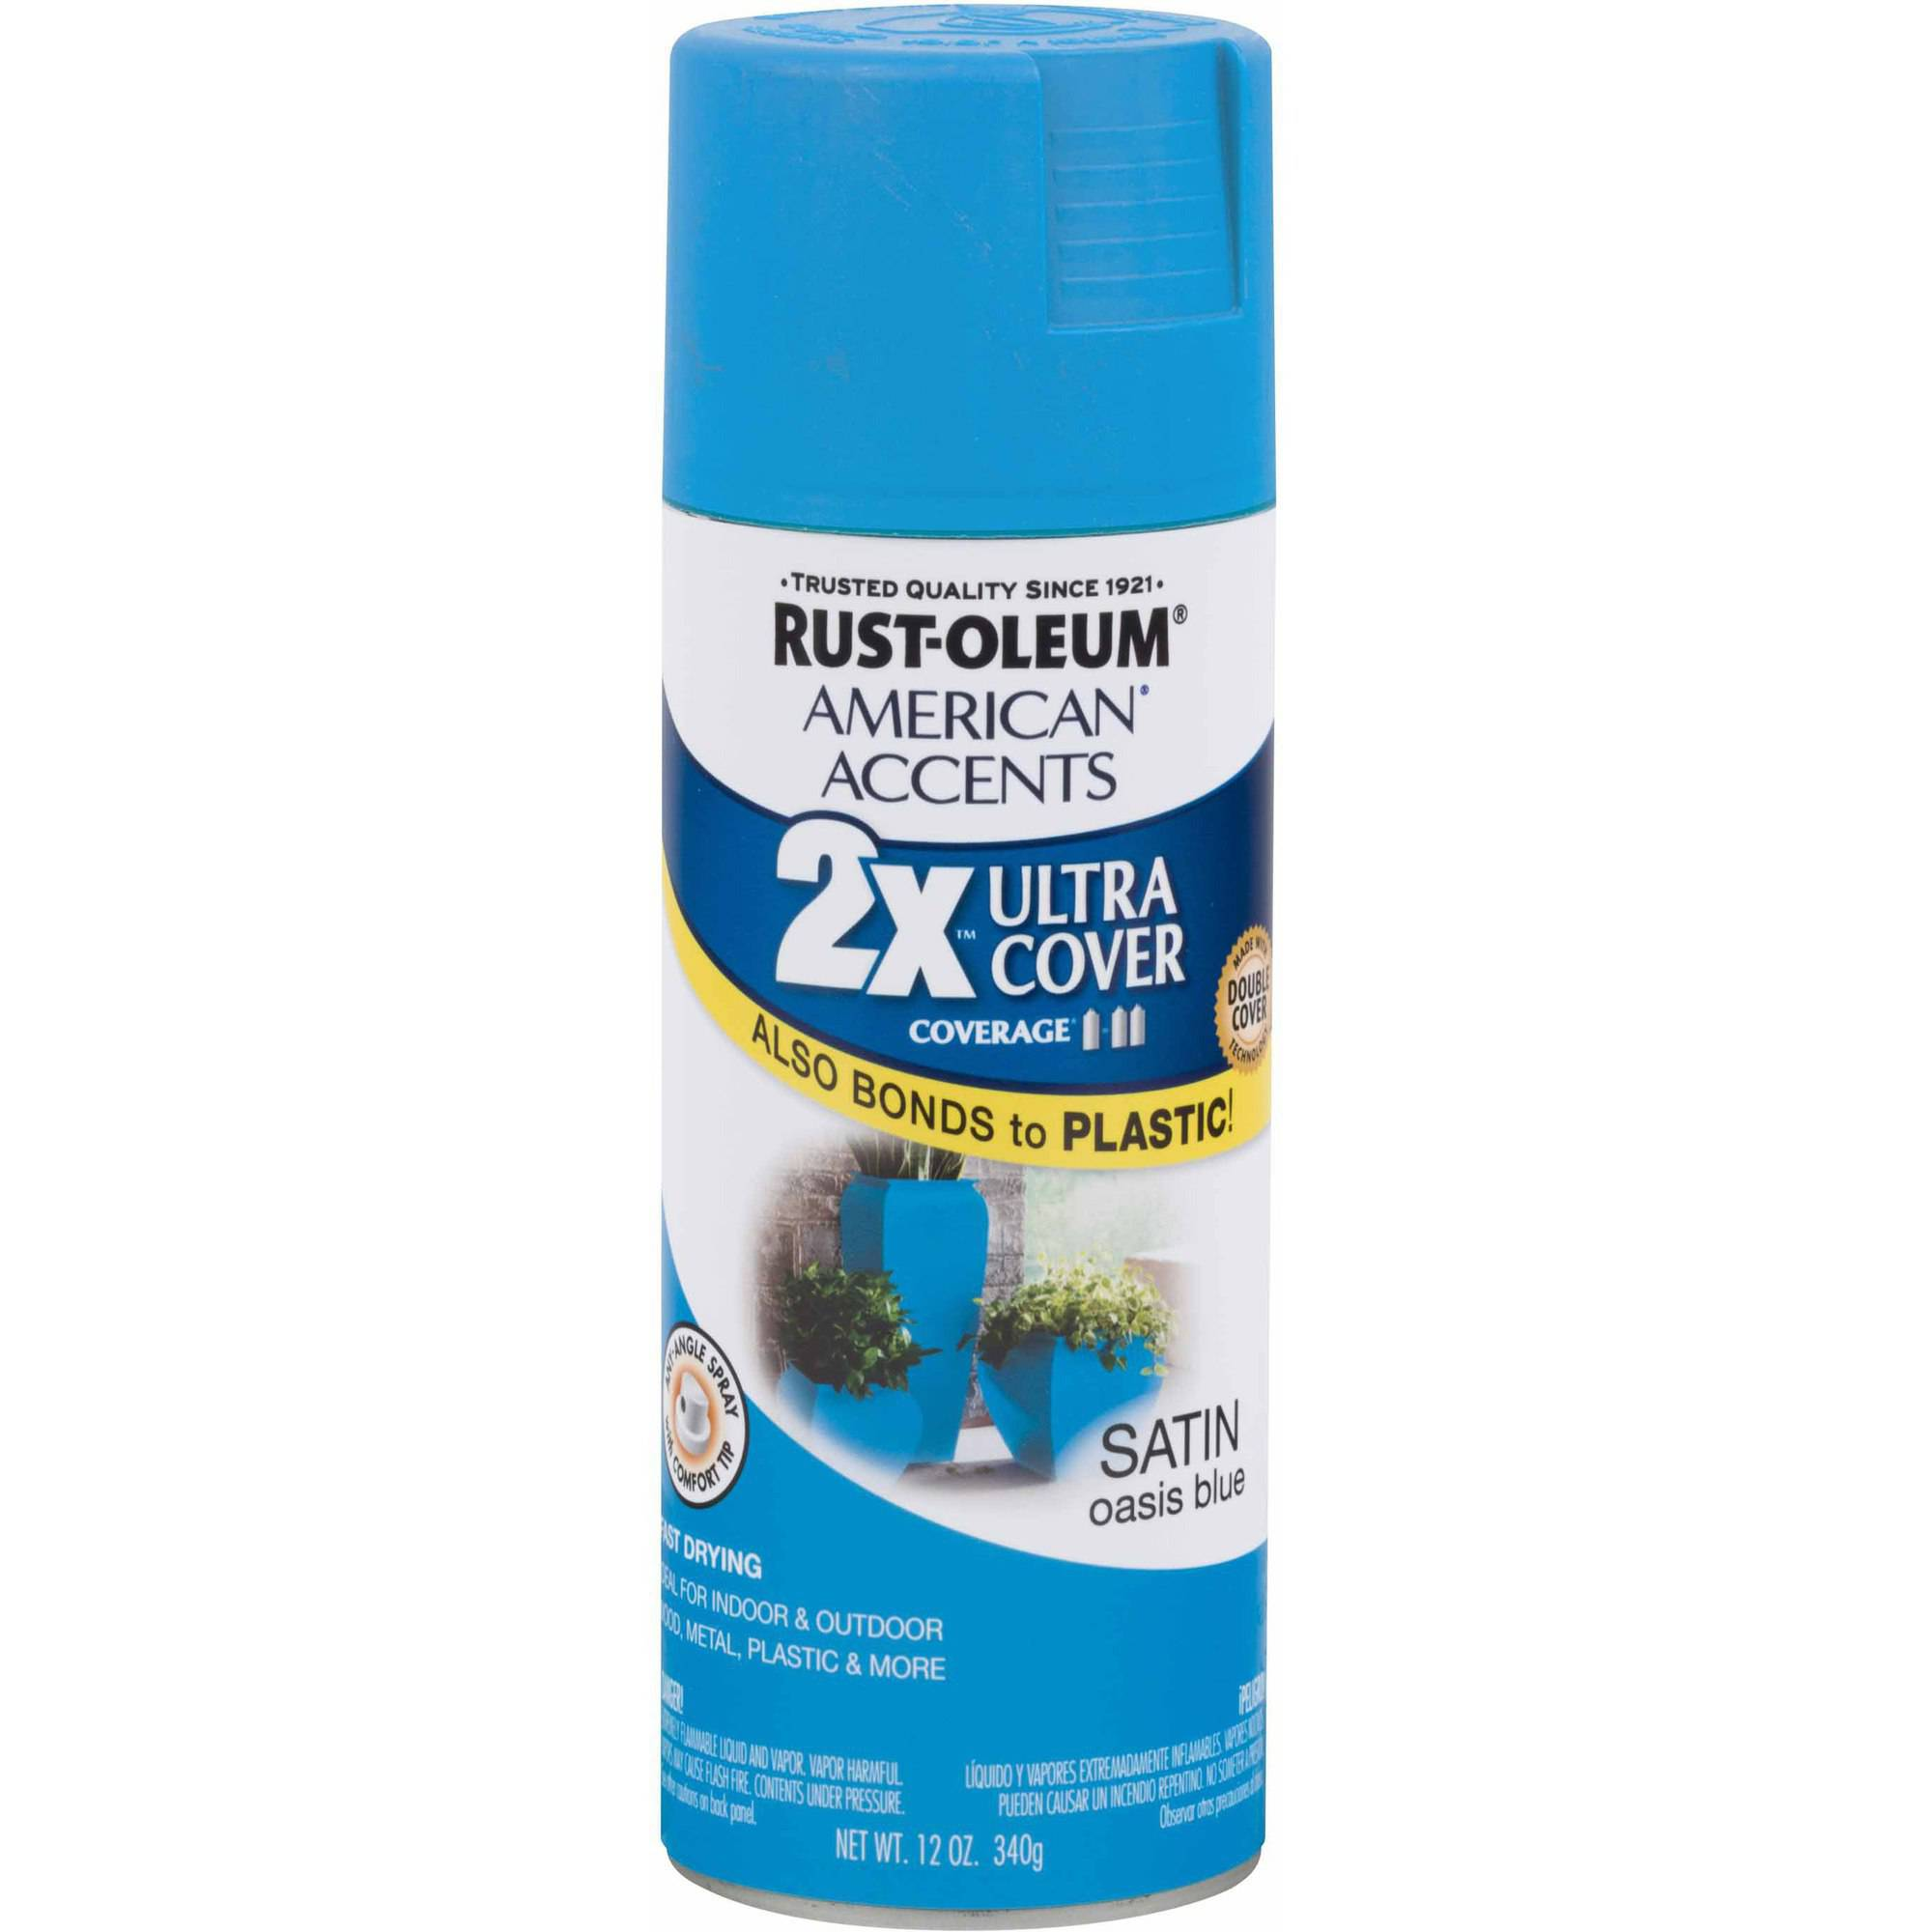 Rust-Oleum American Accents Ultra Cover 2x, Satin Oasis Blue